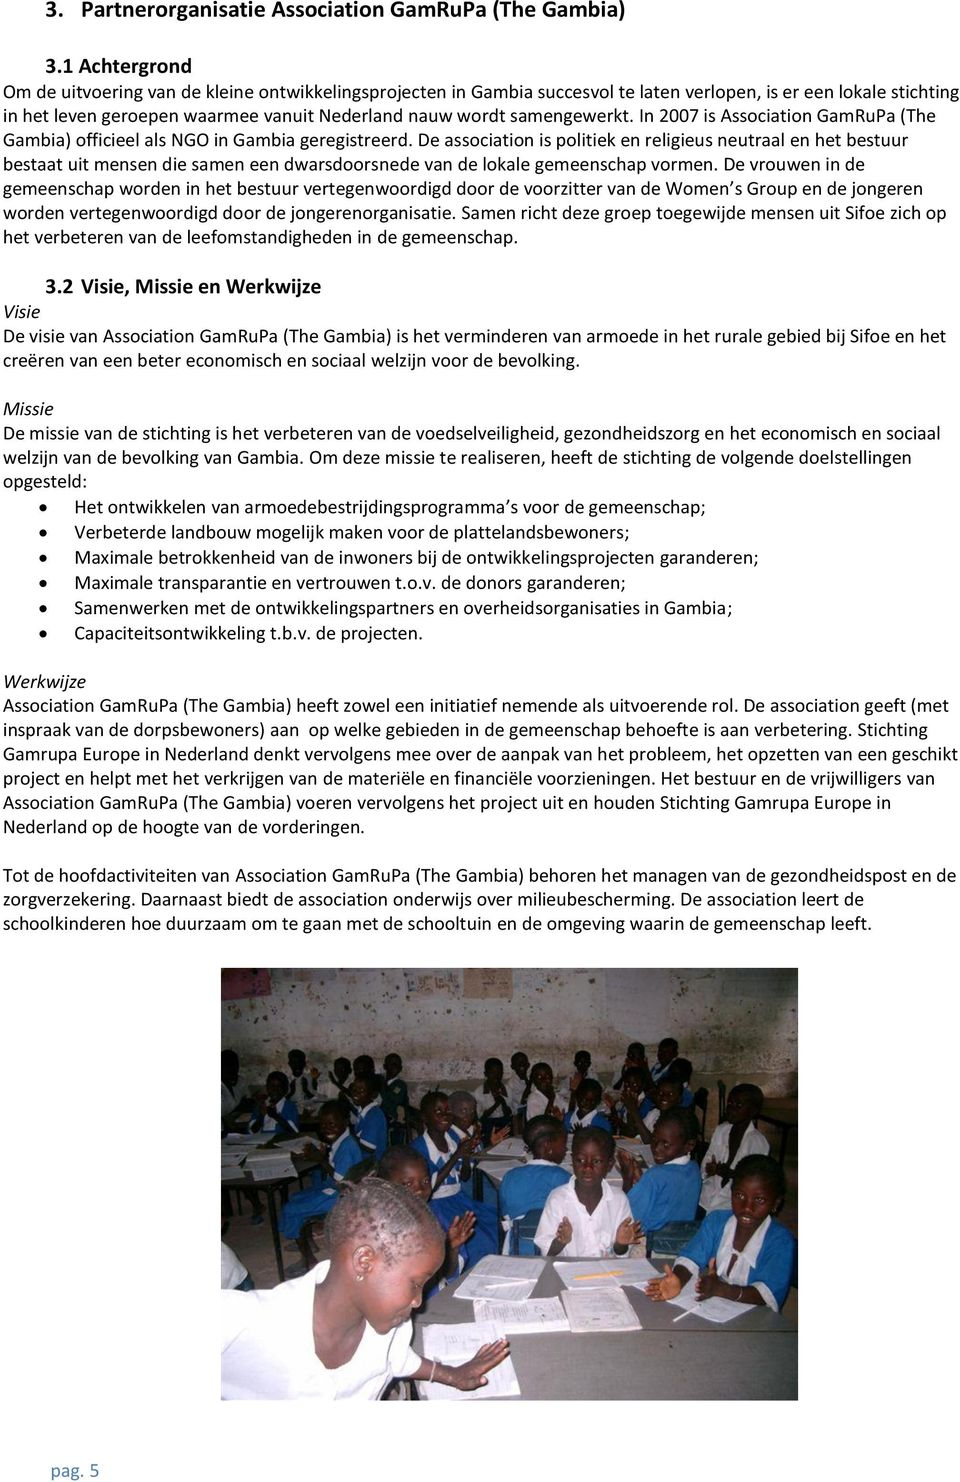 samengewerkt. In 2007 is Association GamRuPa (The Gambia) officieel als NGO in Gambia geregistreerd.